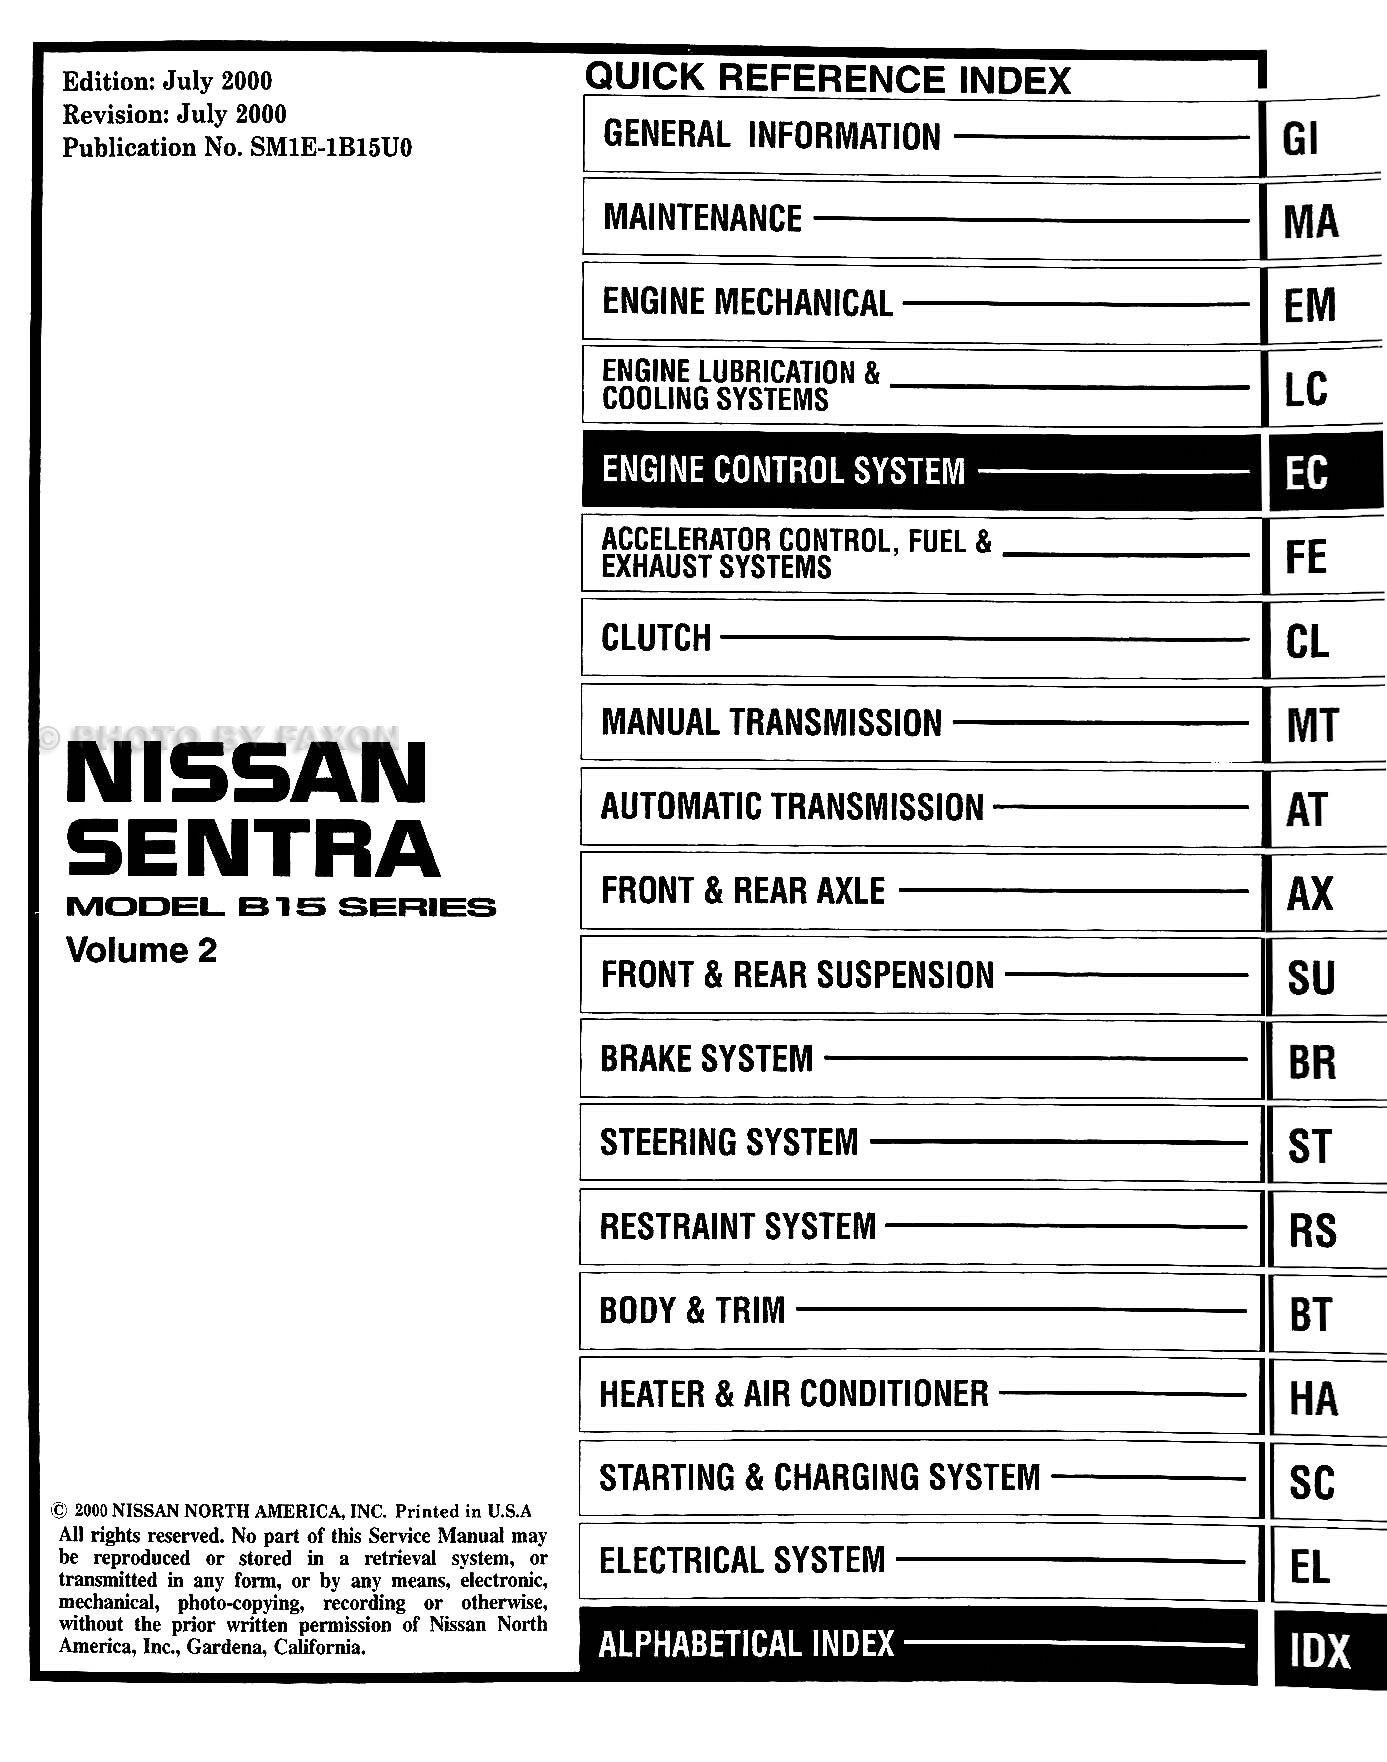 2001 Nissan Sentra CD-ROM Repair Shop Manual